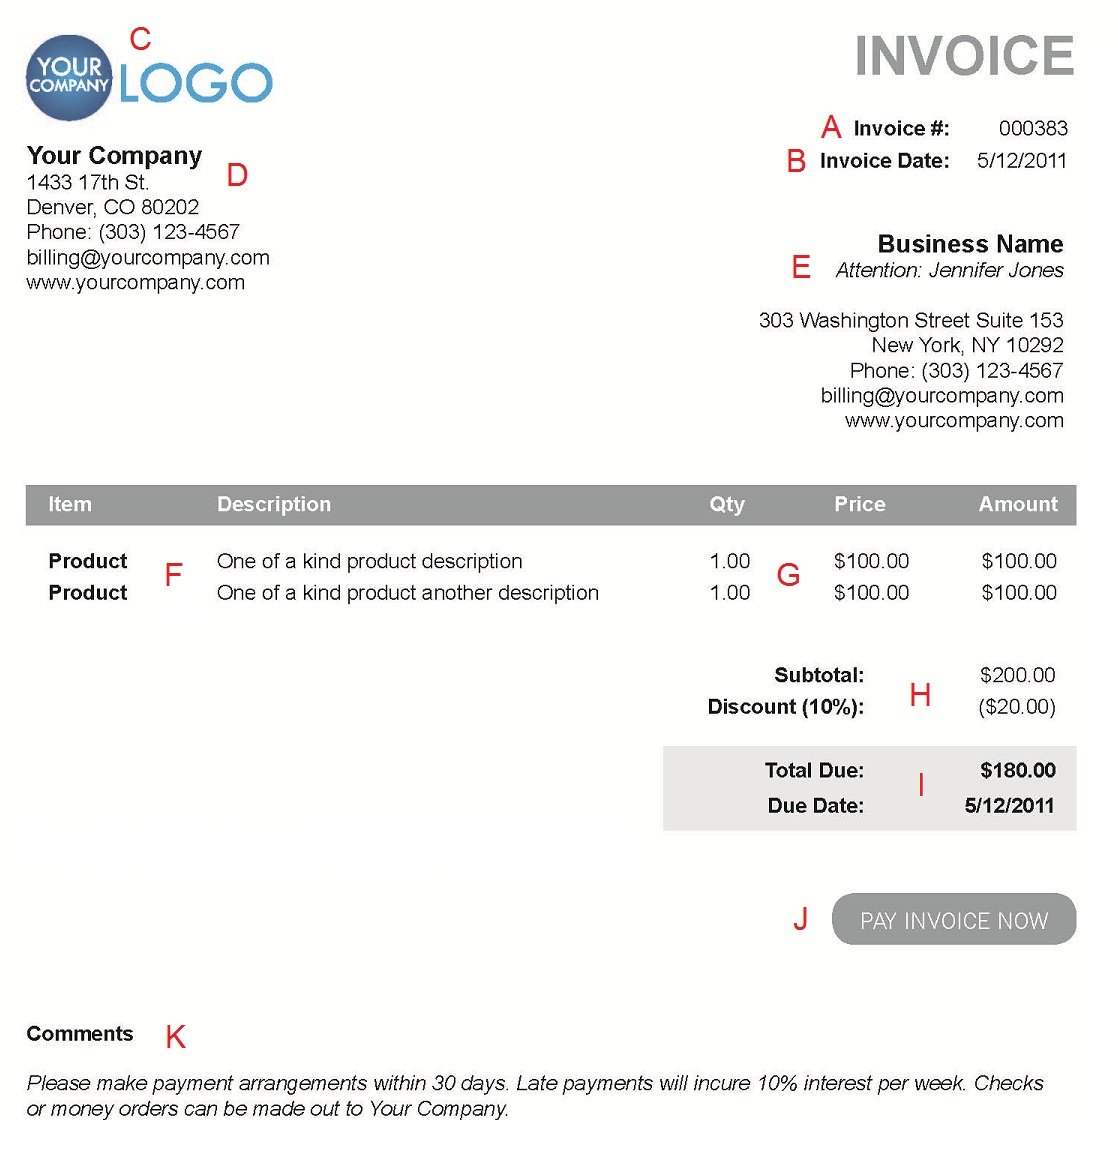 Cagefestus  Fascinating The  Different Sections Of An Electronic Payment Invoice With Handsome A  With Astounding Free Invoice Template Australia Also Invoice Reconciliation Template In Addition What A Invoice And Sample Gst Invoice As Well As Ebay Invoice Scam Additionally Mail Invoice From Paysimplecom With Cagefestus  Handsome The  Different Sections Of An Electronic Payment Invoice With Astounding A  And Fascinating Free Invoice Template Australia Also Invoice Reconciliation Template In Addition What A Invoice From Paysimplecom